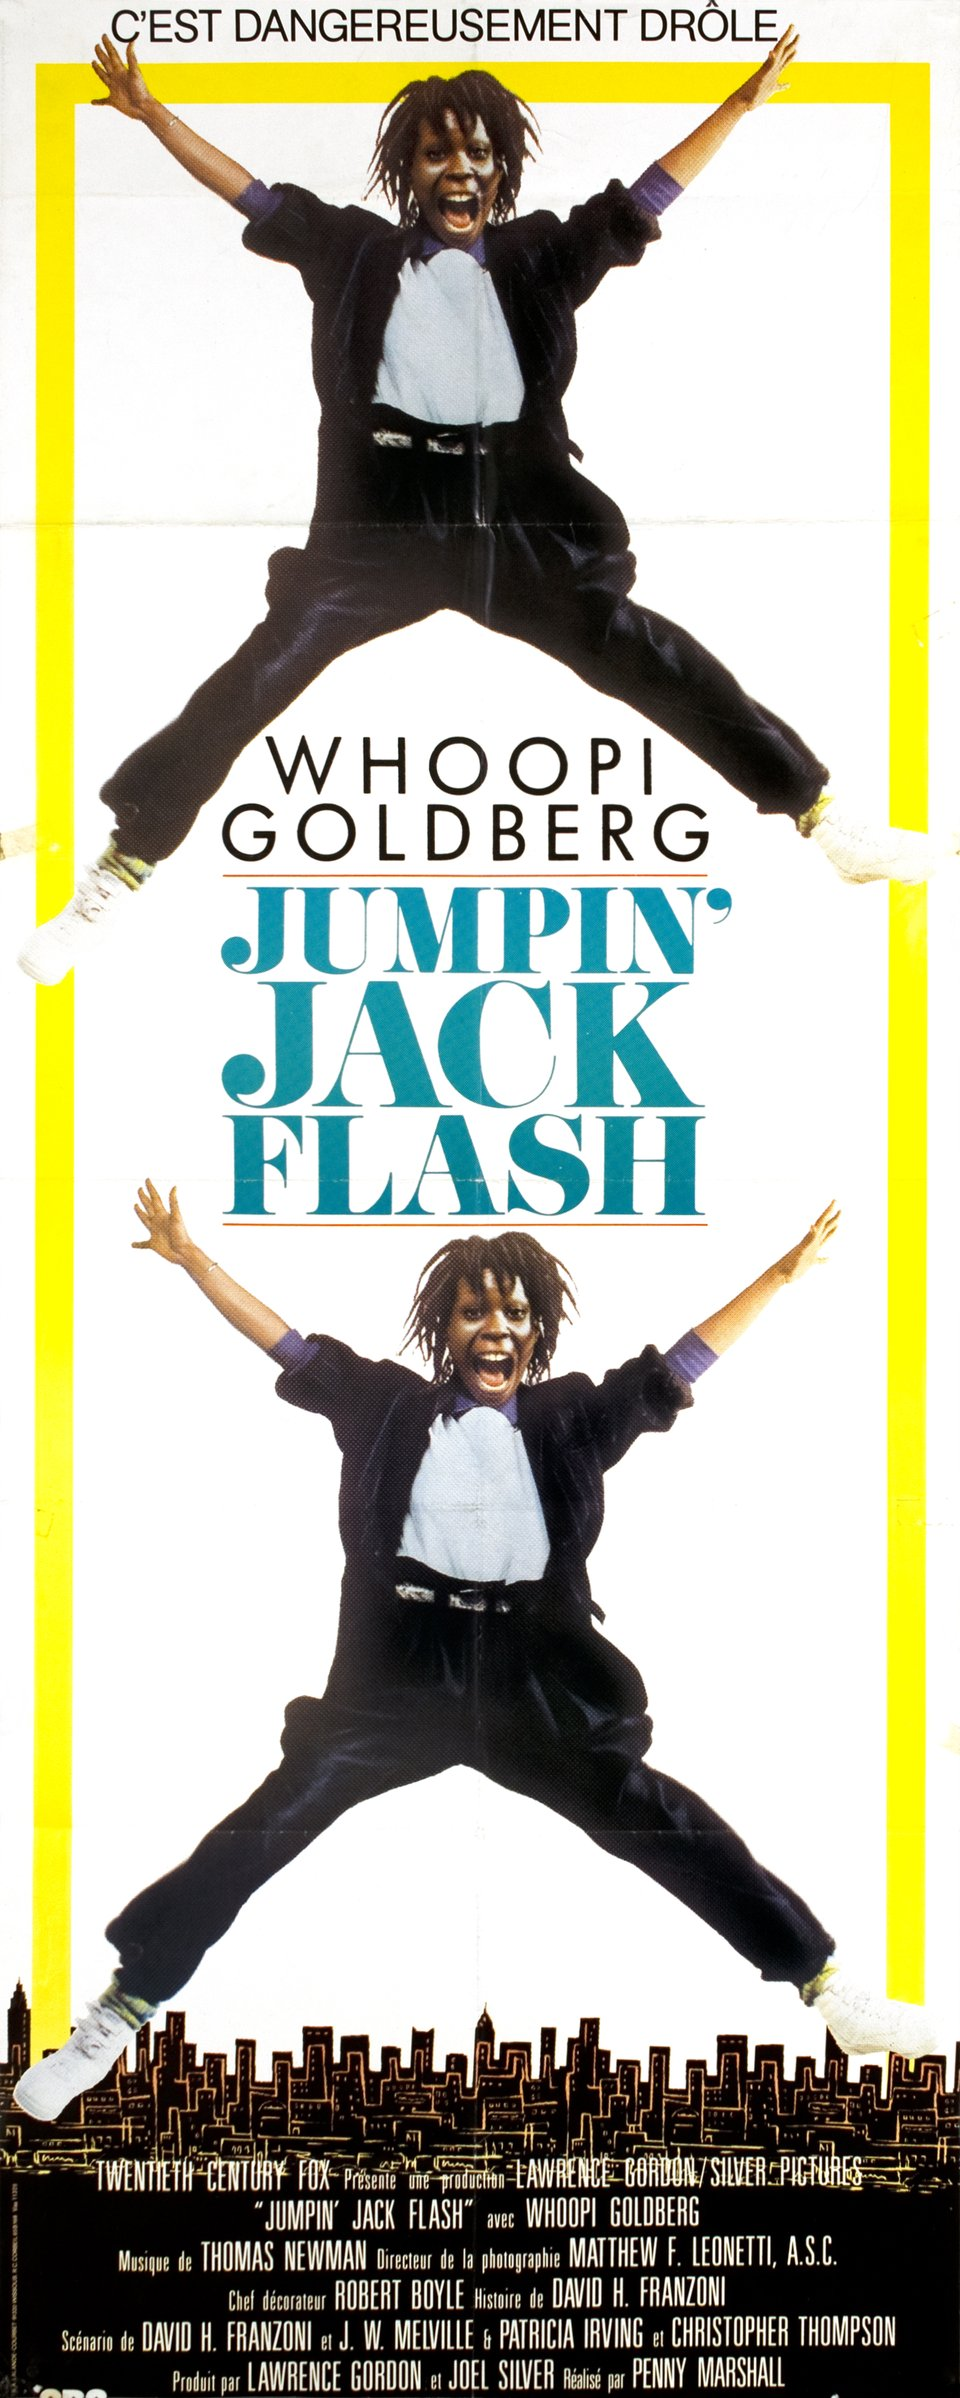 """Jumpin' Jack Flash, dangereusement drôle!"", movie with Woopi Goldberg – Affiche ancienne –  ANONYME – 1986"